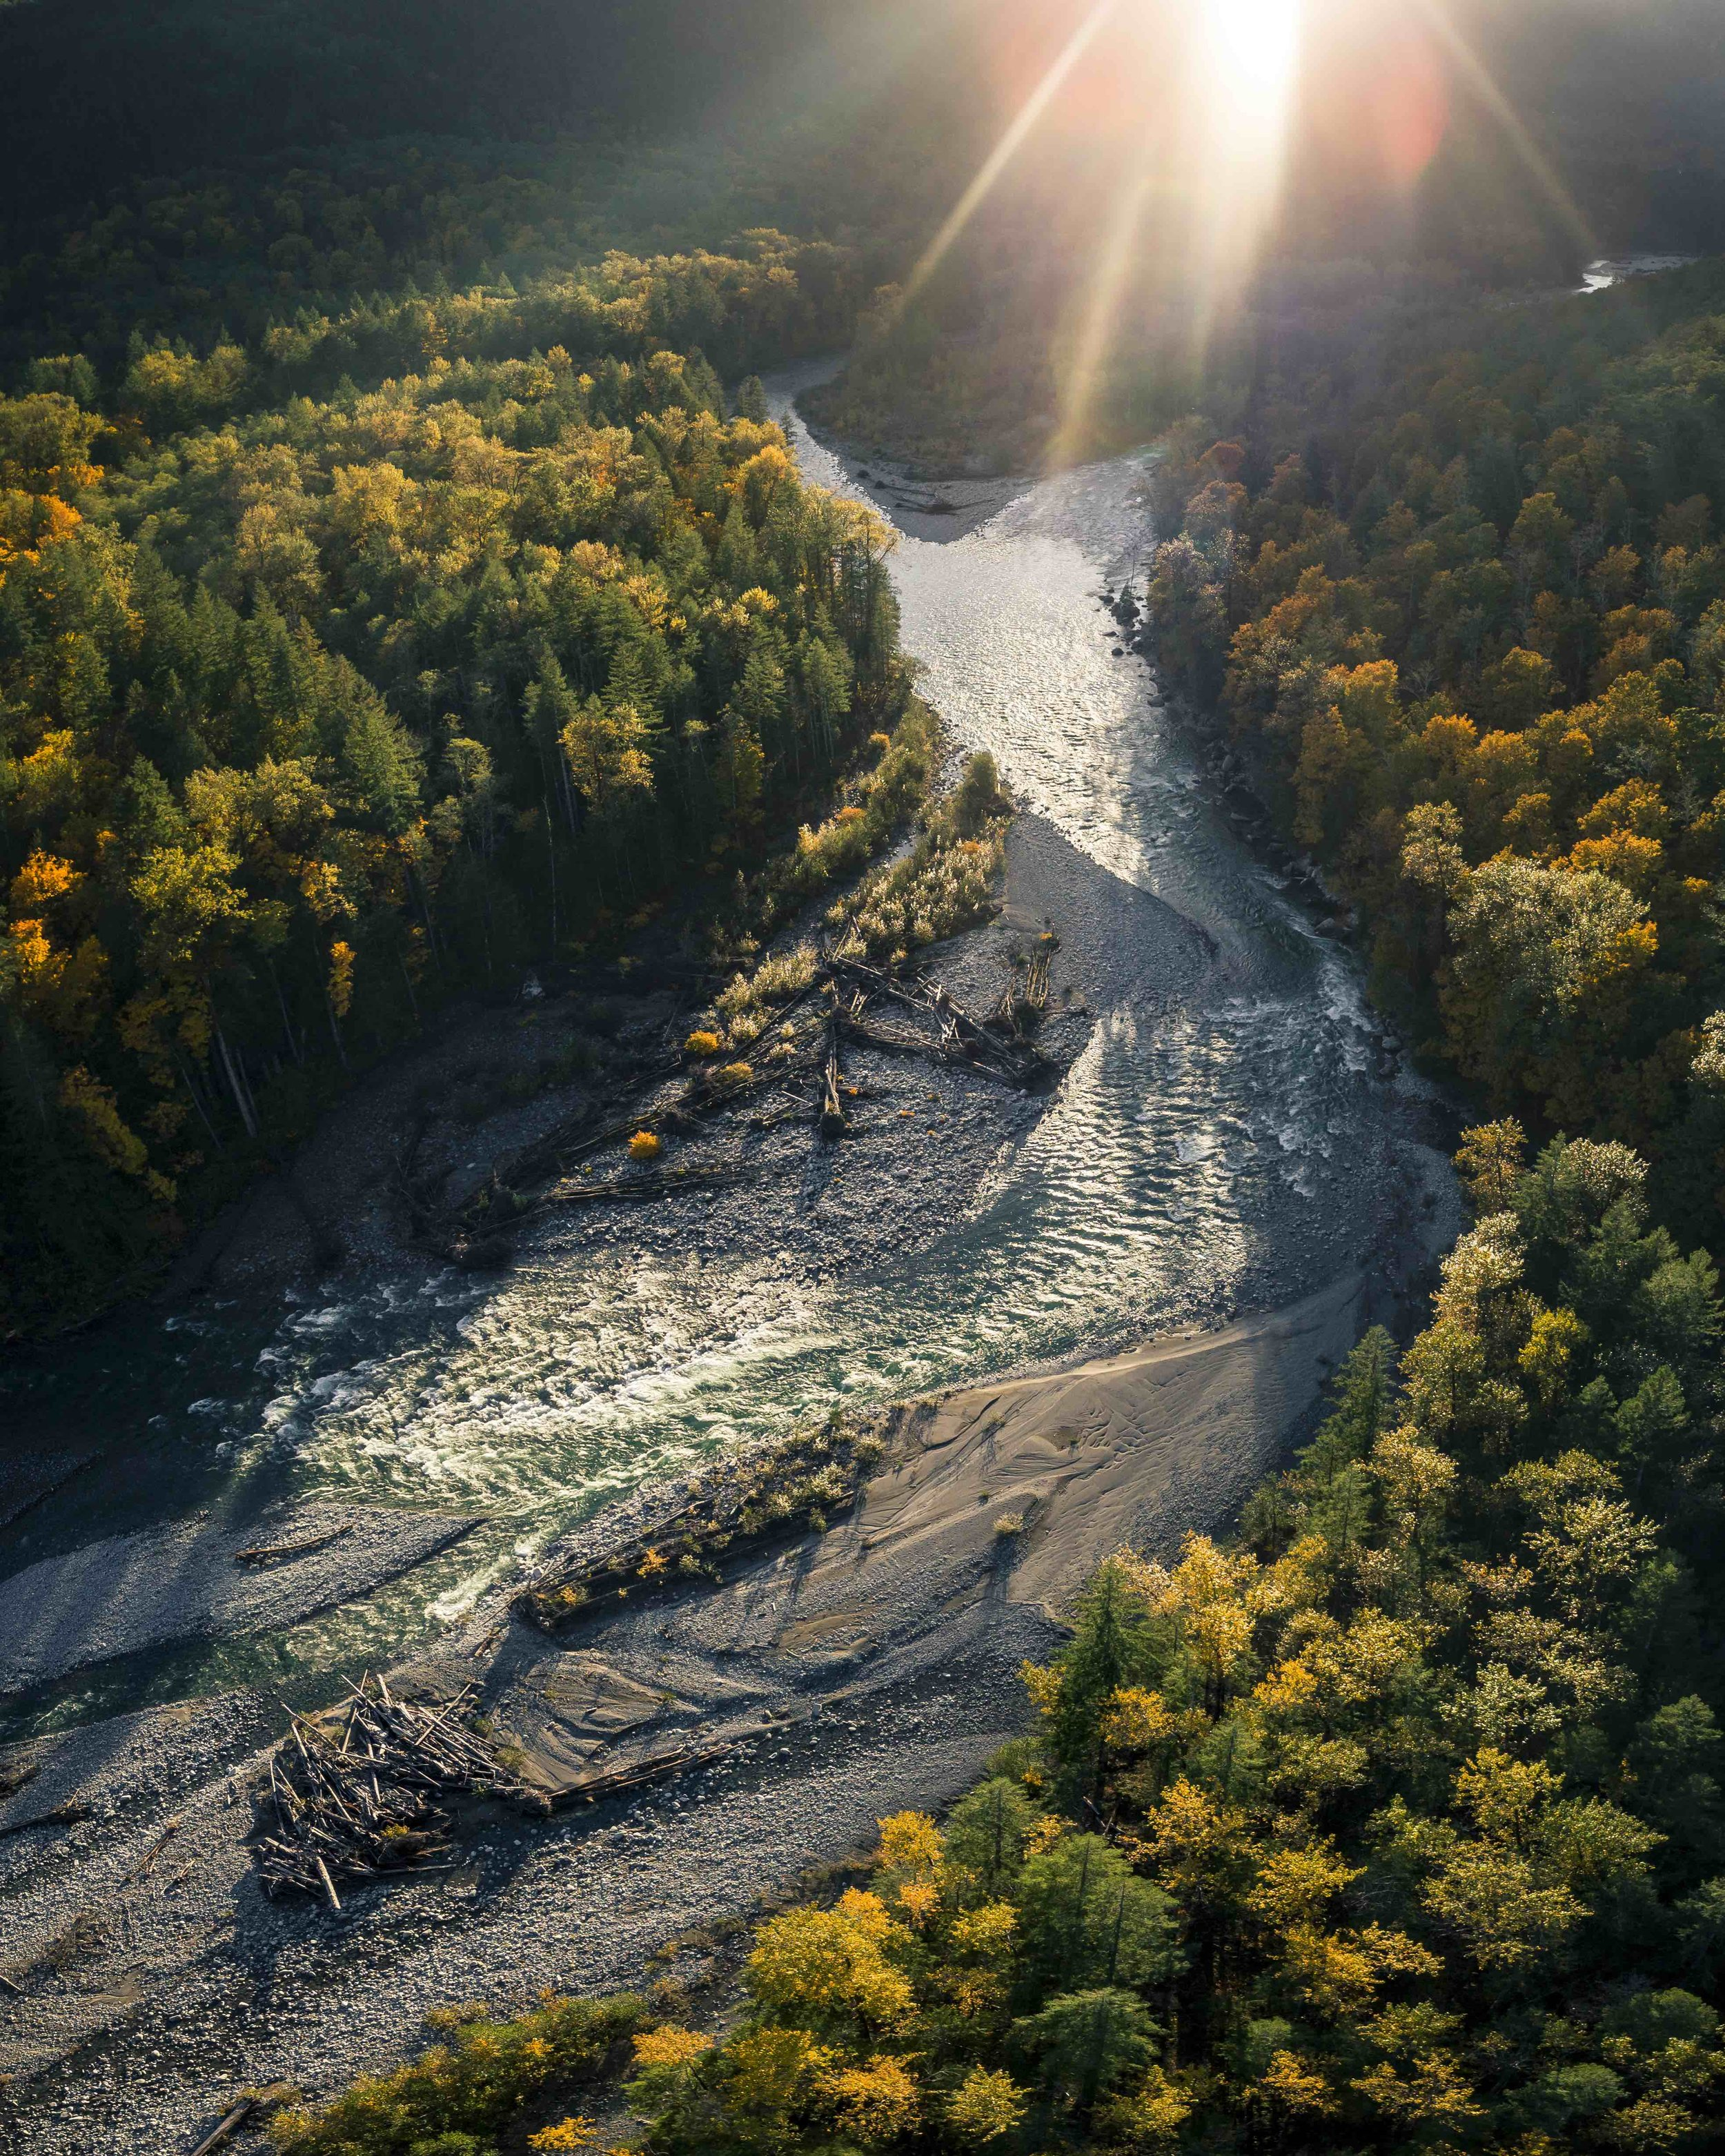 Fall_Season_Nature_Aerial_of_River_by_Colorful_Trees_with_Lens_Flare.jpg